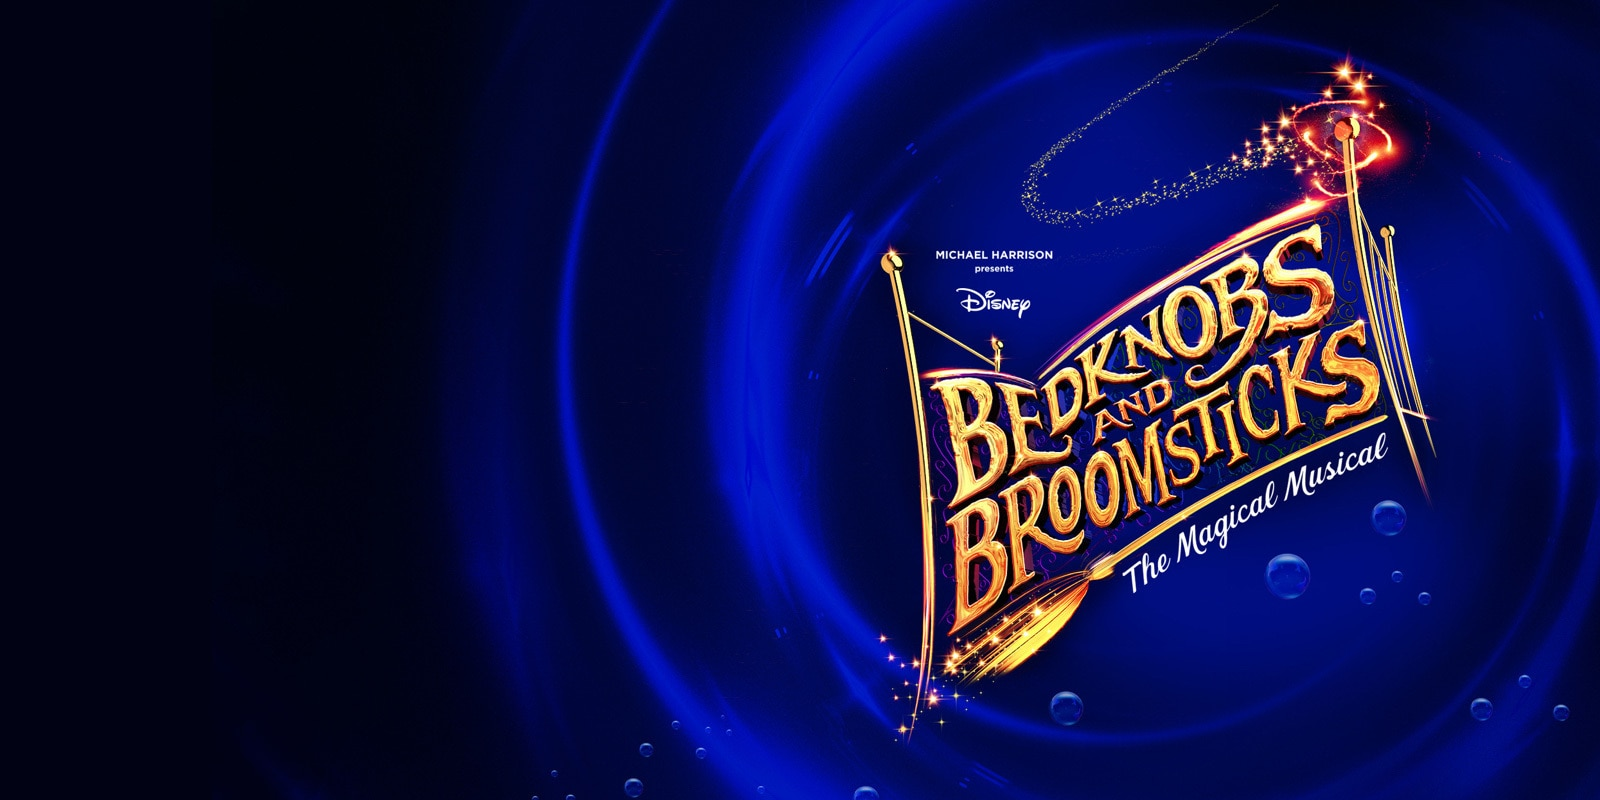 Bedknobs and Broomsticks in the shape of a golden bedframe, on a swirling blue background